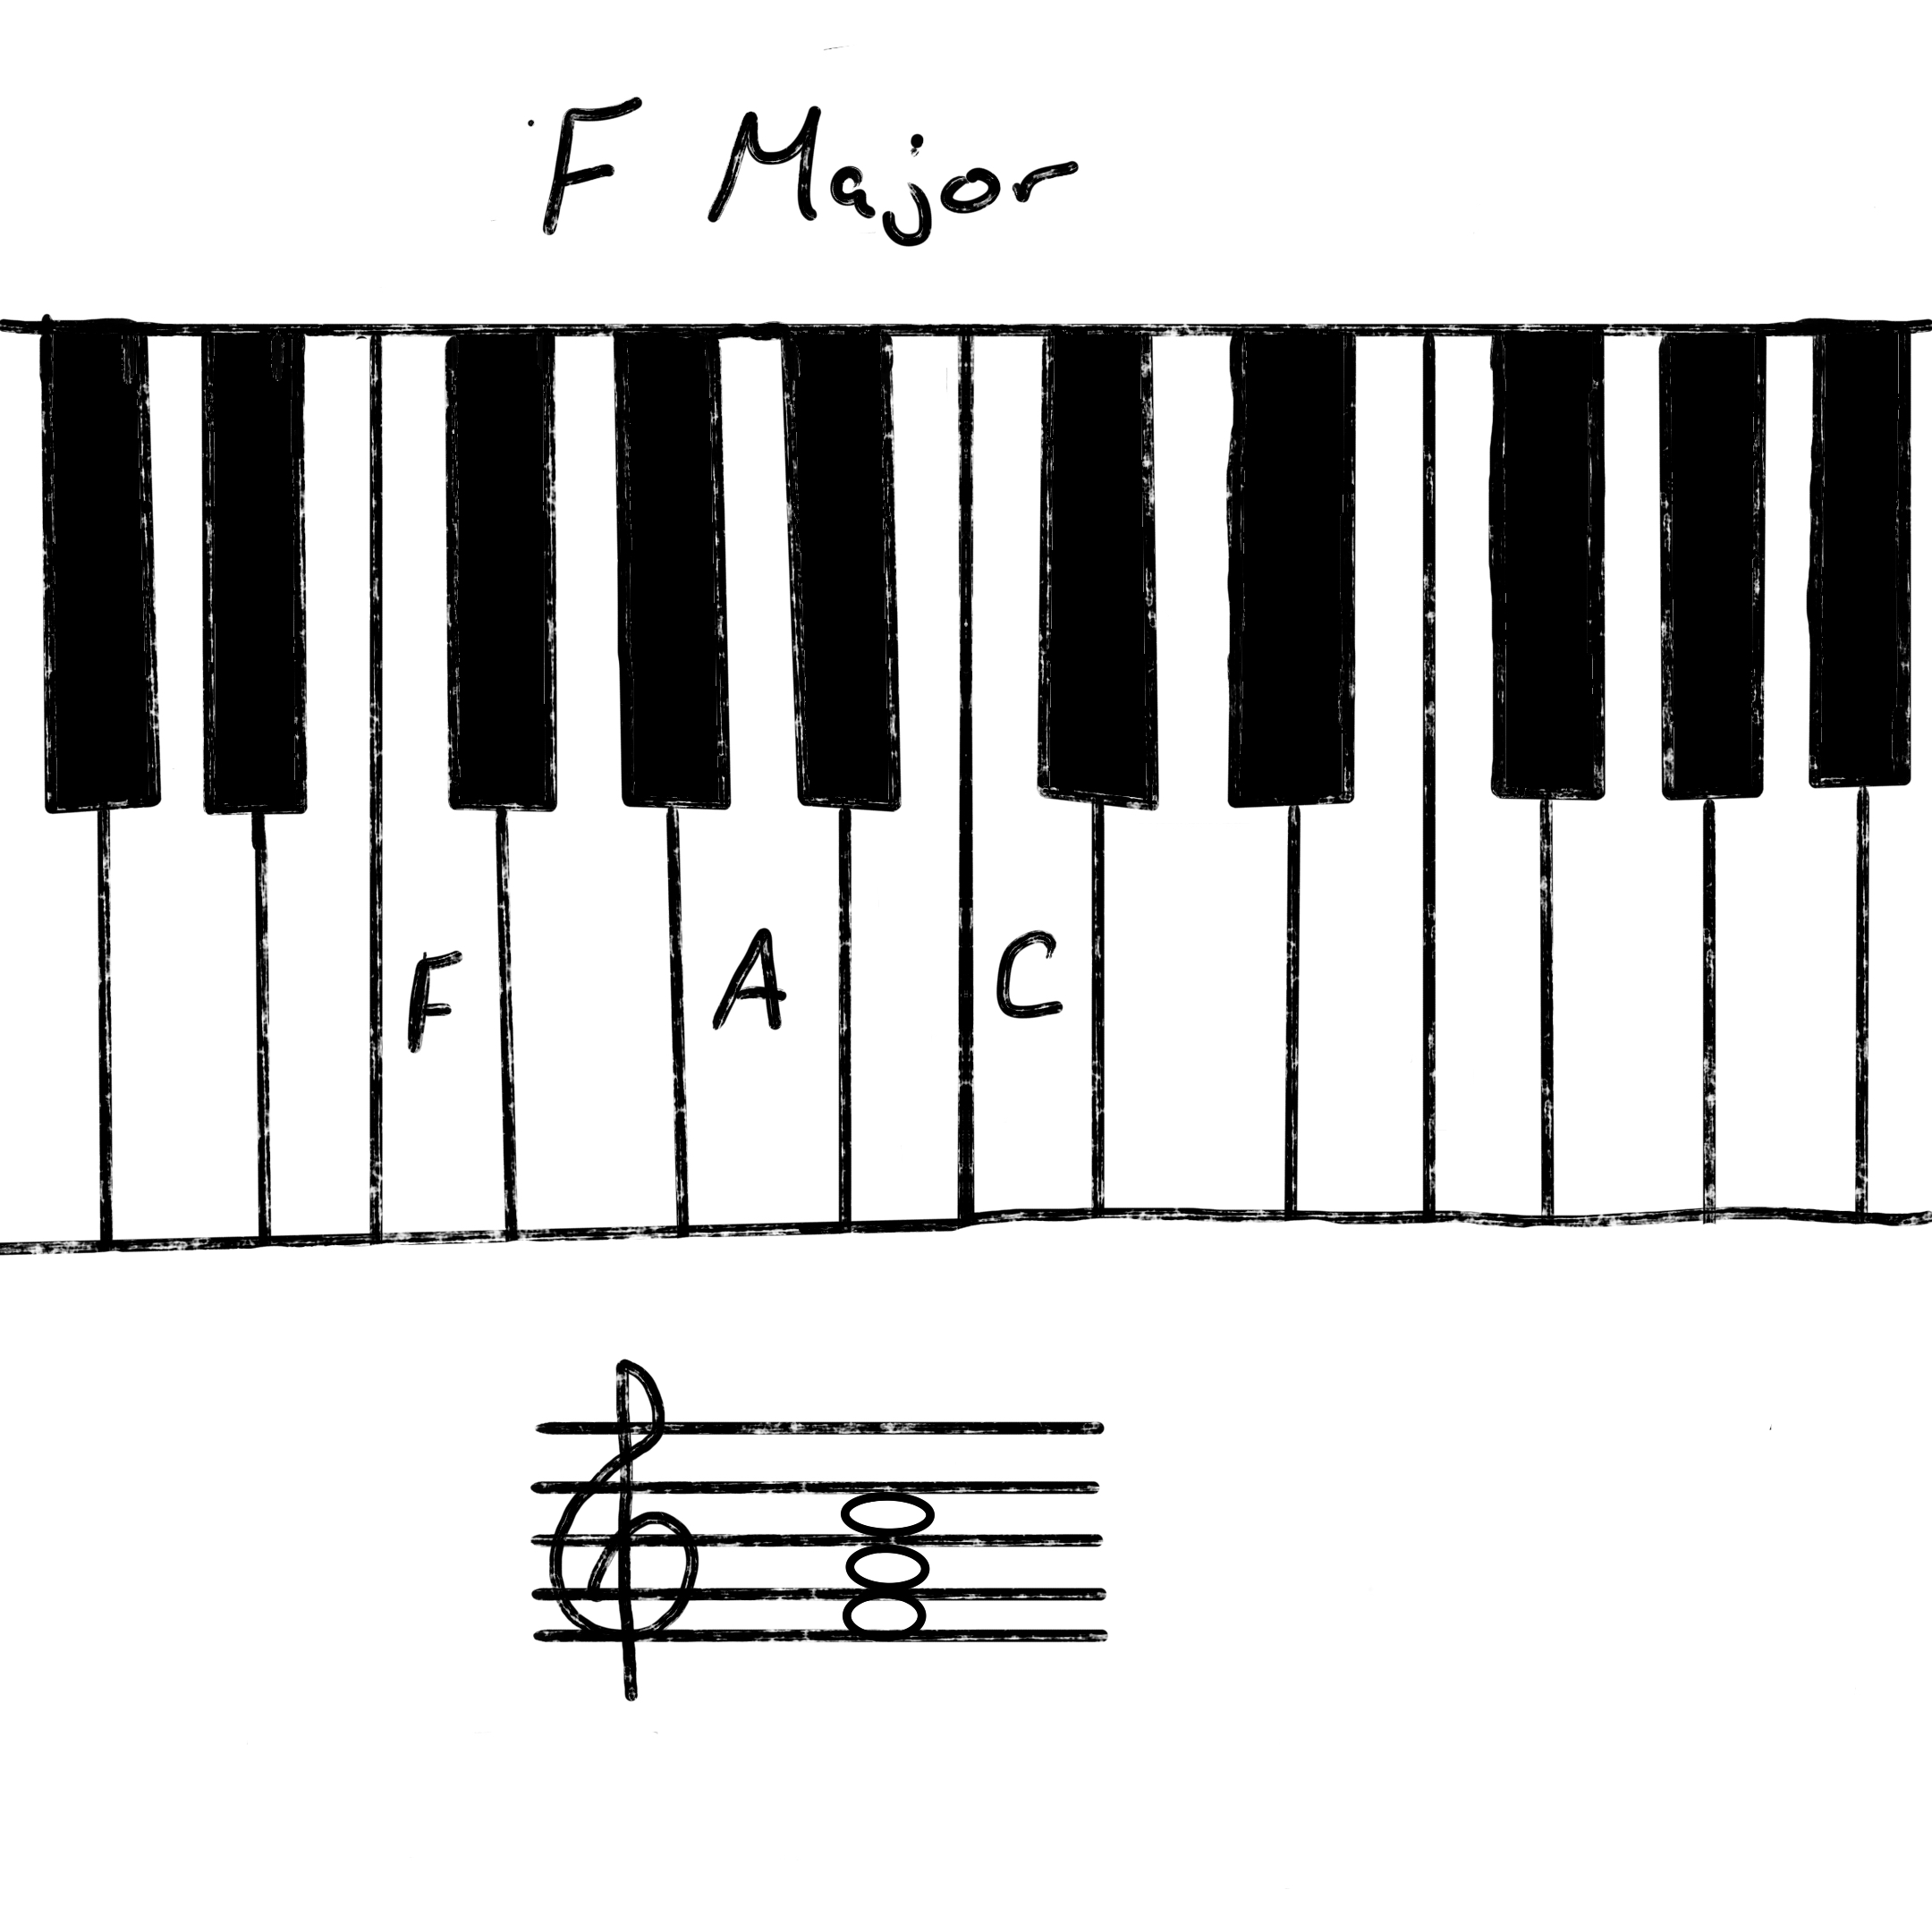 F Major Chords Everything To Master This Key   Music Maker Gear